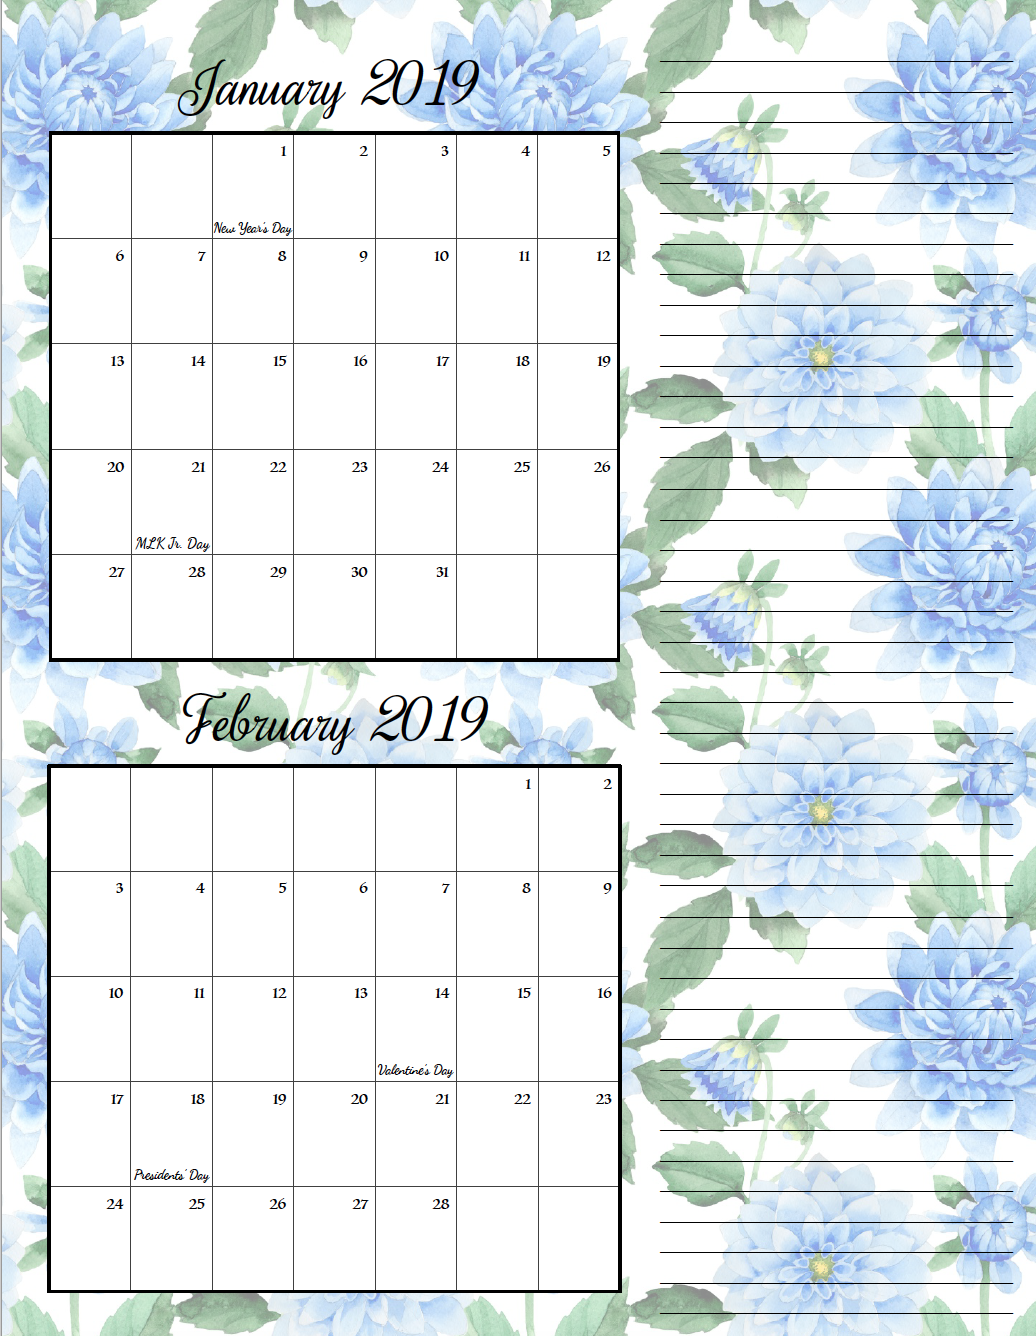 January/February. FREE Printable 2019 Bimonthly Calendars. Space for notes, holidays marked. 2 different designs! #free #freeprintable #printable #calendar #freecalendar #bimonthly #freeprintablecalendar